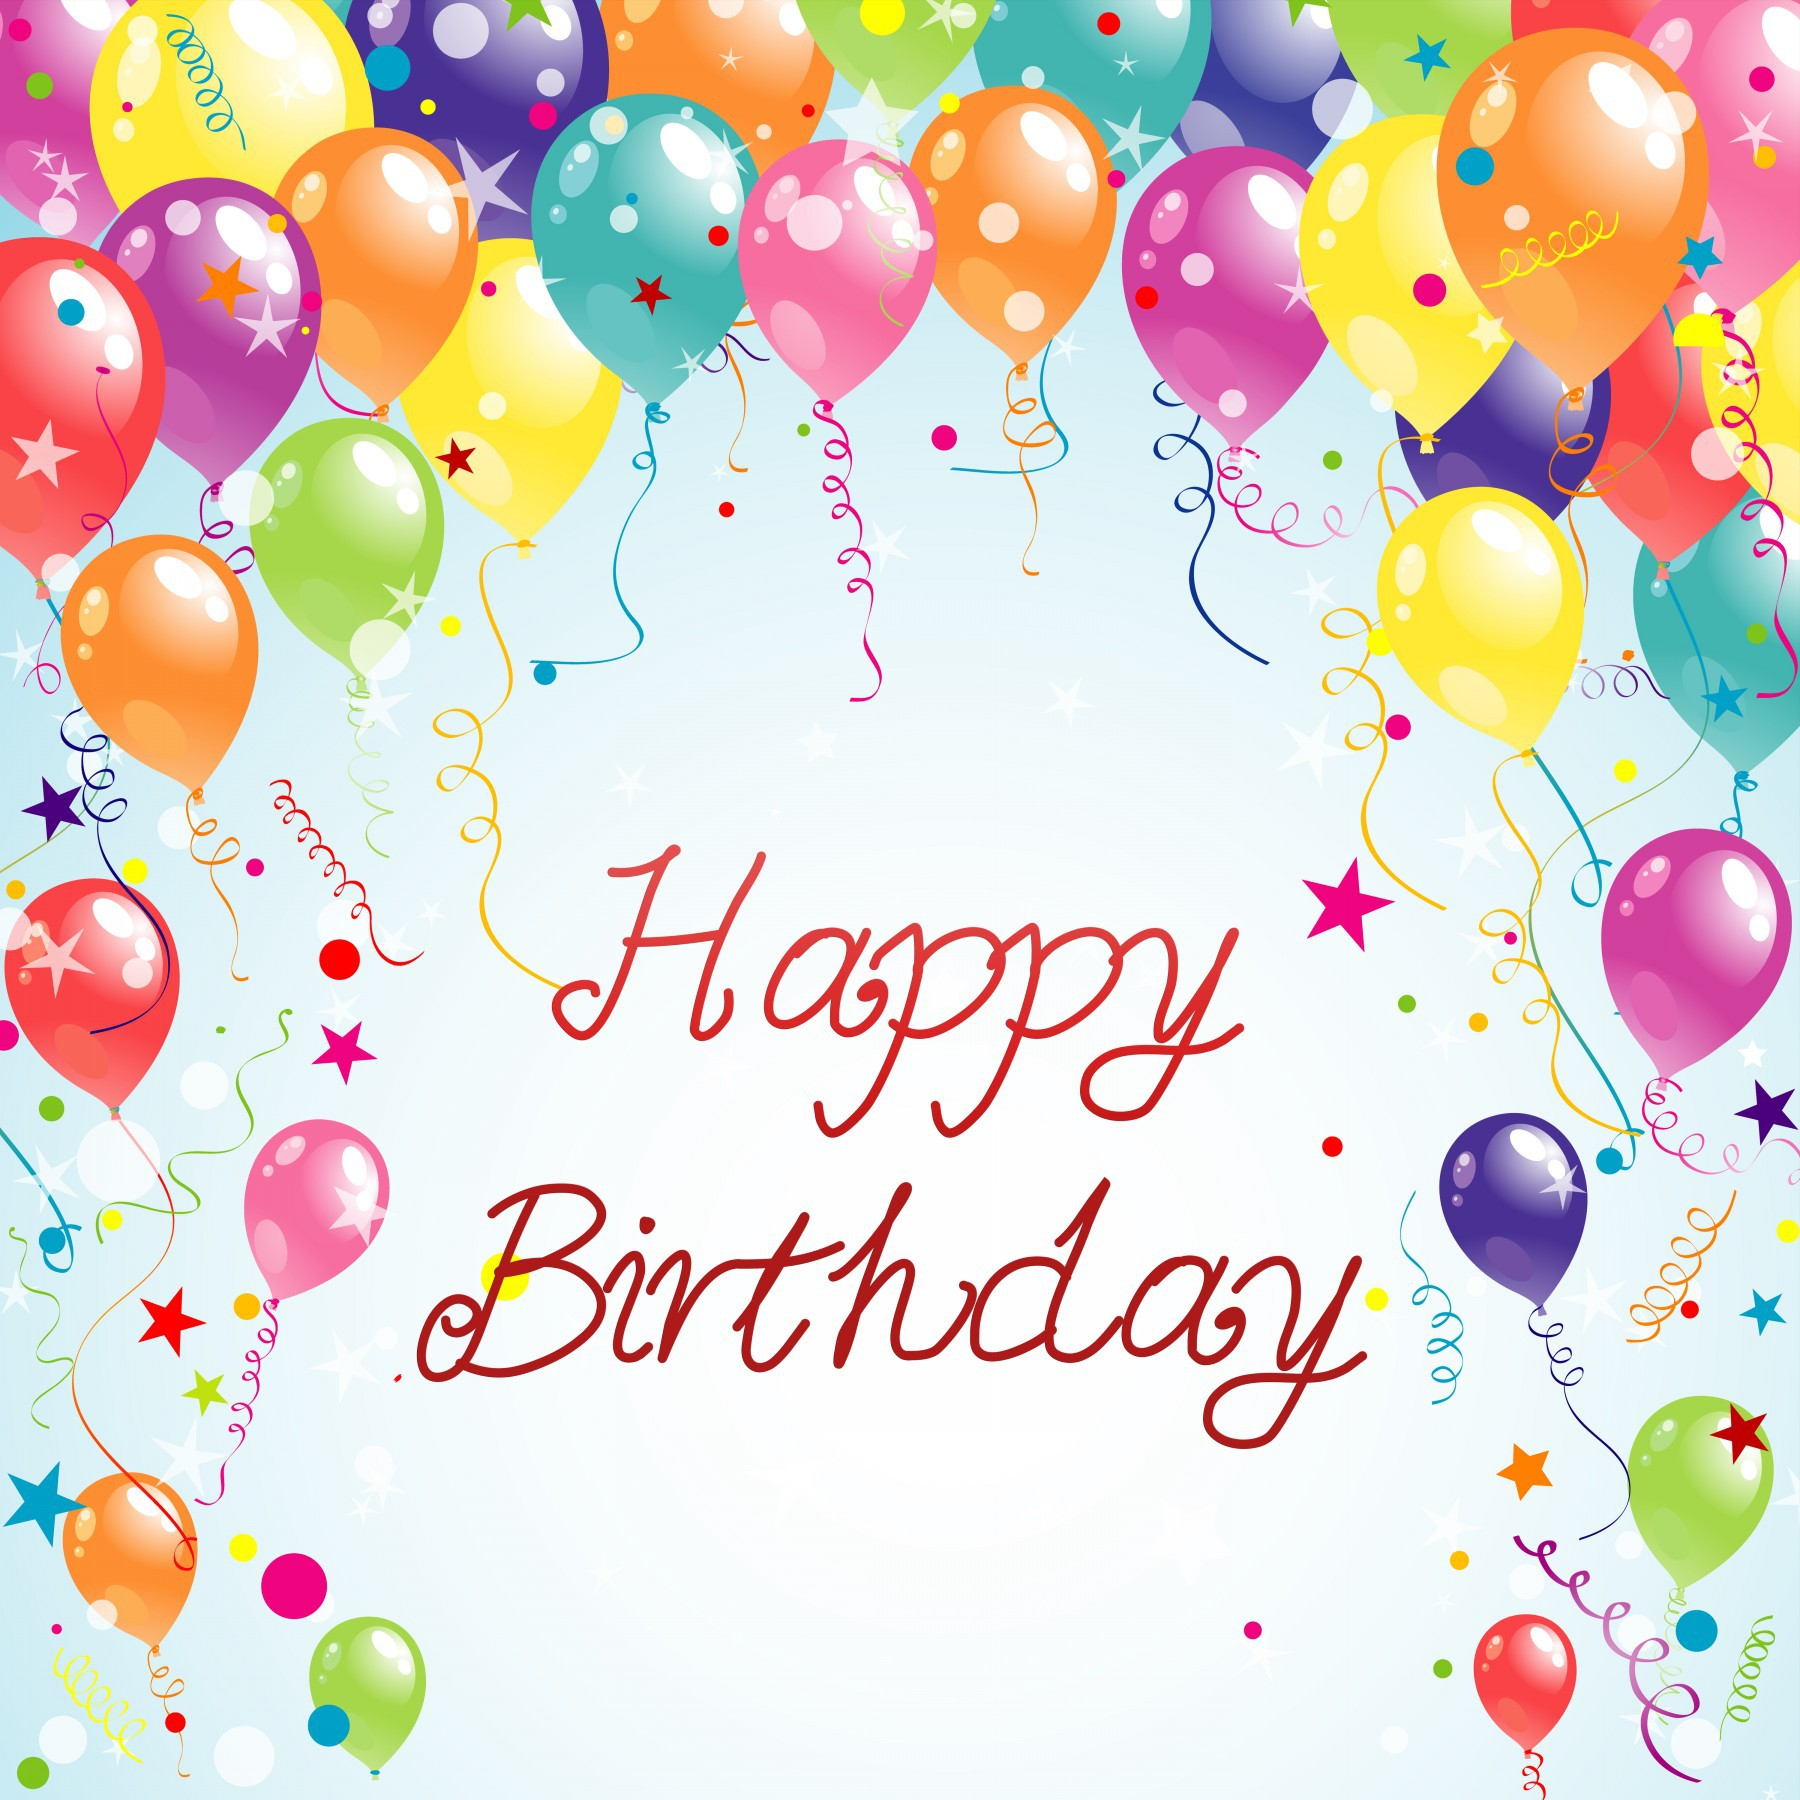 happy birthday images wallpapers ; 11ee1a1af2ddb91d6e6ff96e2aa9b353